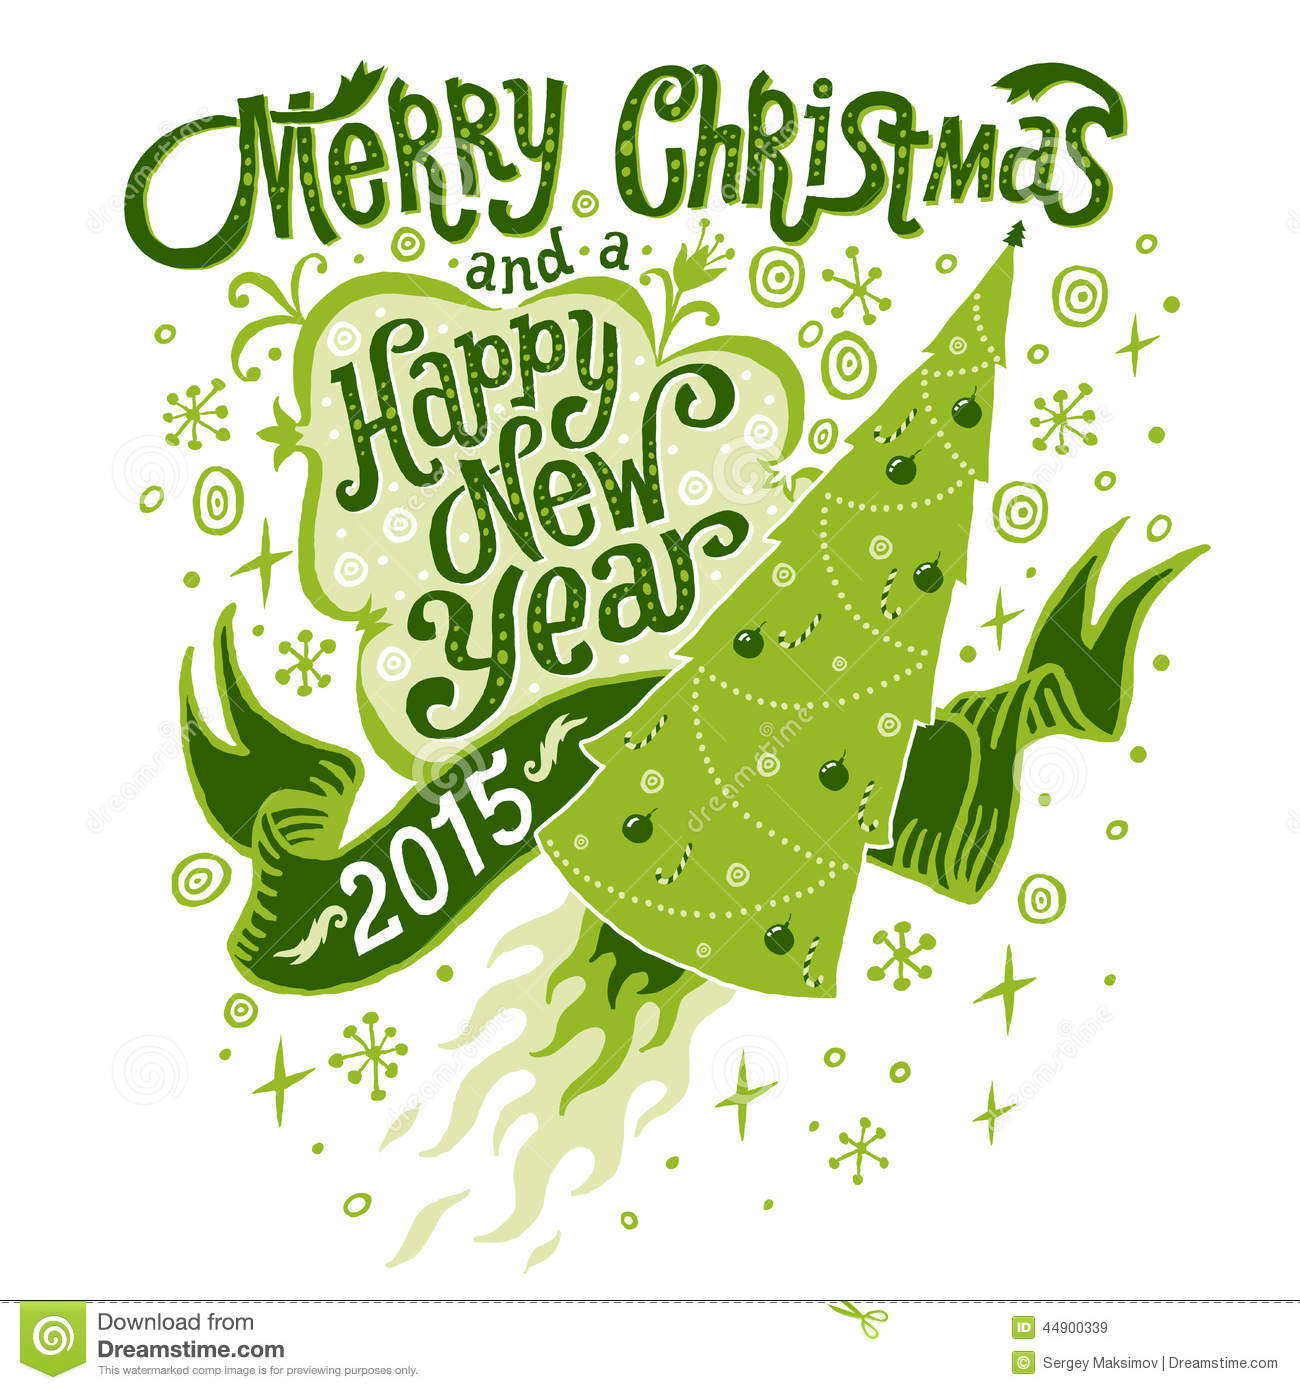 Merry christmas and happy new year 2015 greeting card with download merry christmas and happy new year 2015 greeting card with handlettering typography stock vector m4hsunfo